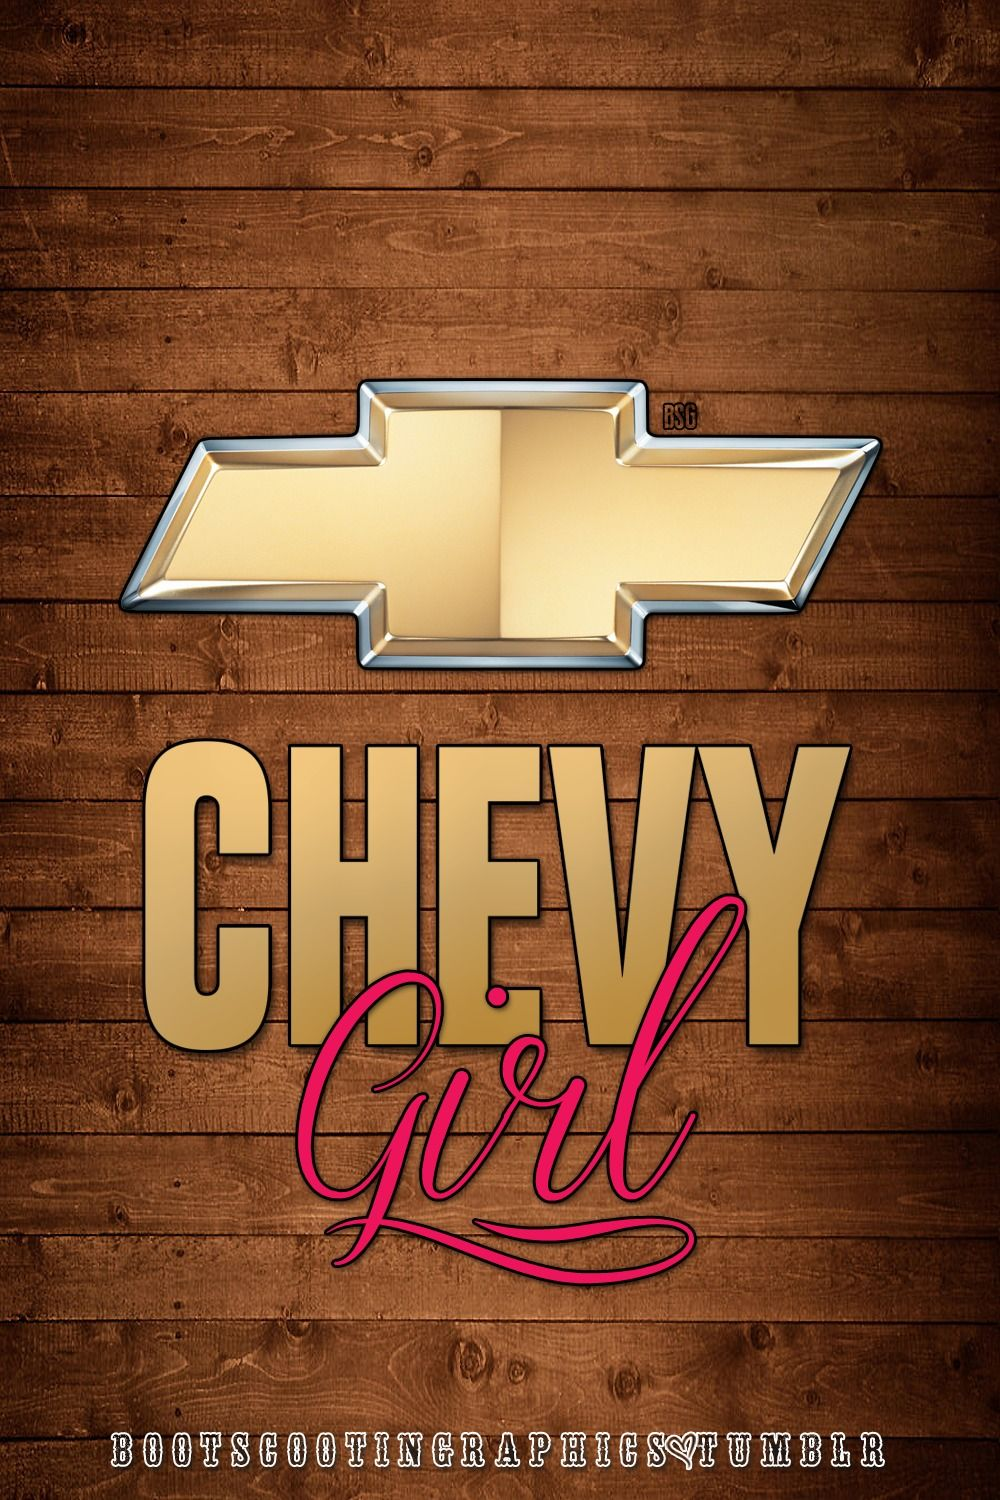 Boot Scootin' Graphics Chevy girl, Country girls, Girl